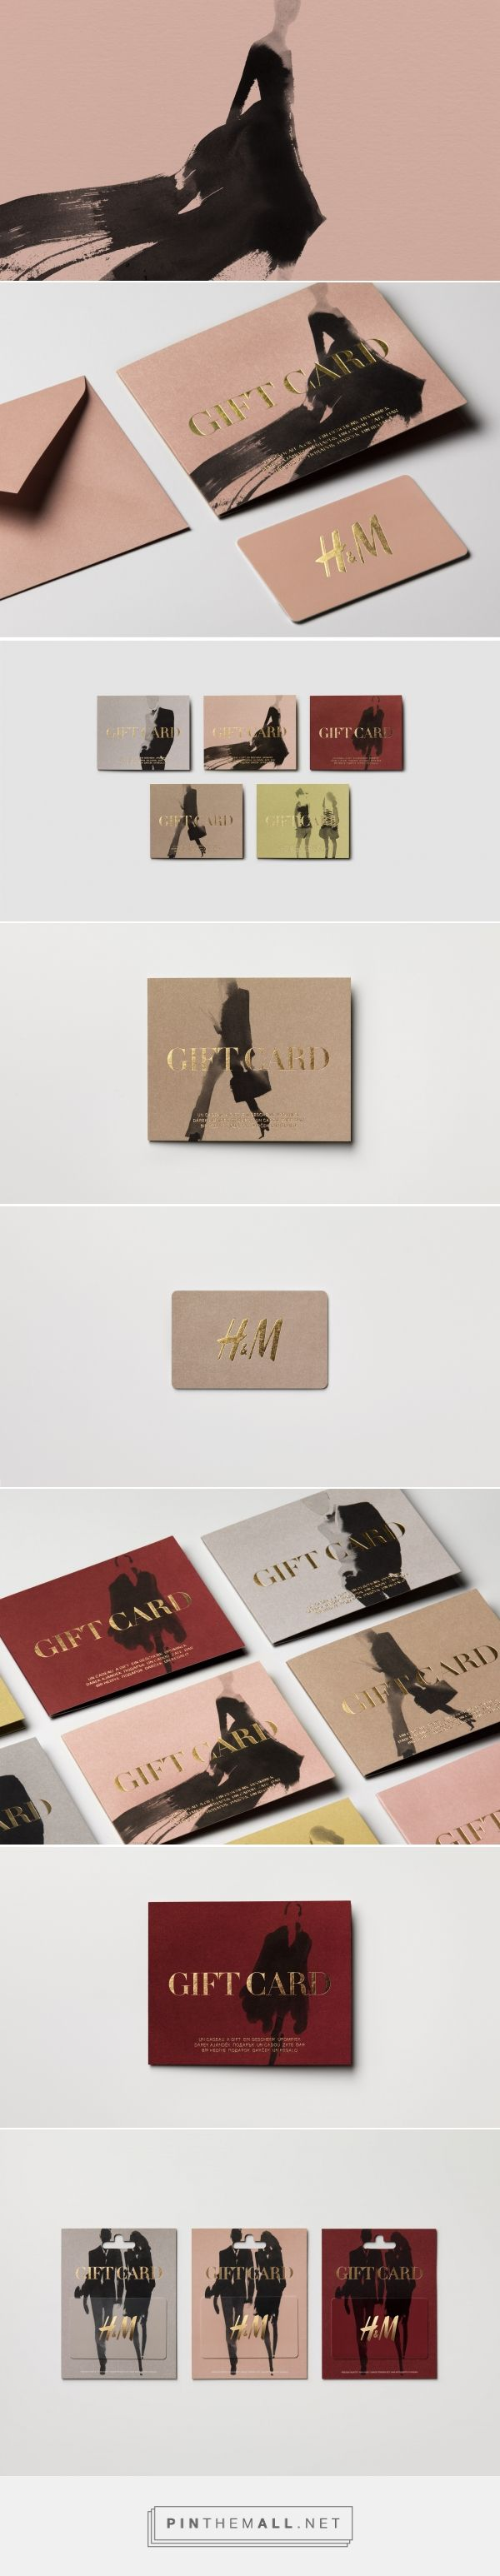 H&M Fashion Branding by The Studio | Fivestar Branding Agency – Design and Branding Agency & Inspiration Gallery